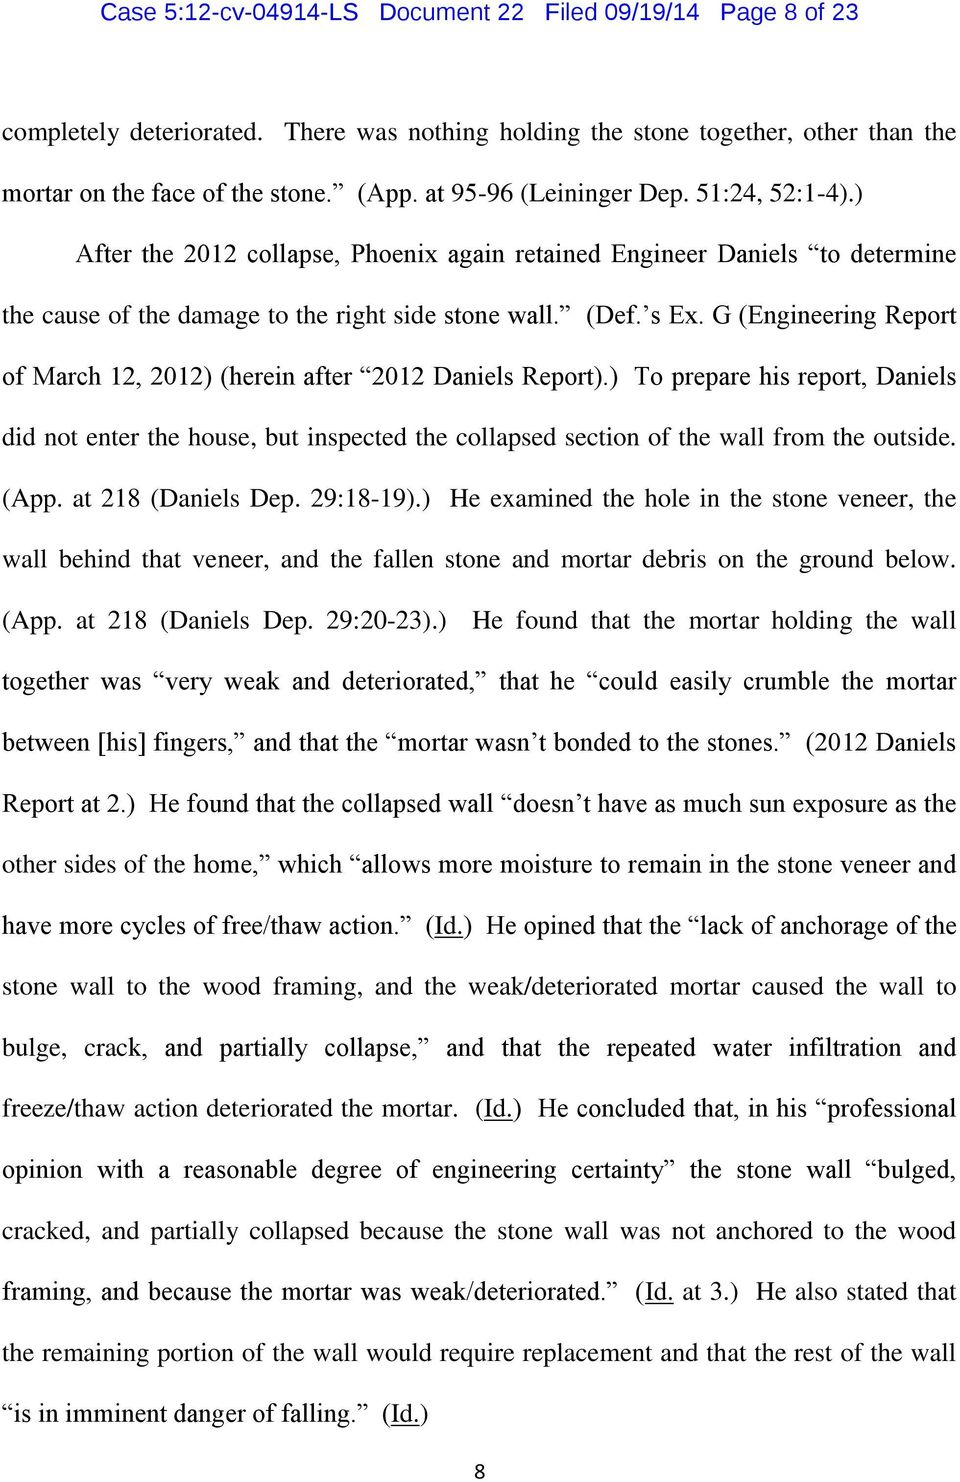 G (Engineering Report of March 12, 2012) (herein after 2012 Daniels Report).) To prepare his report, Daniels did not enter the house, but inspected the collapsed section of the wall from the outside.